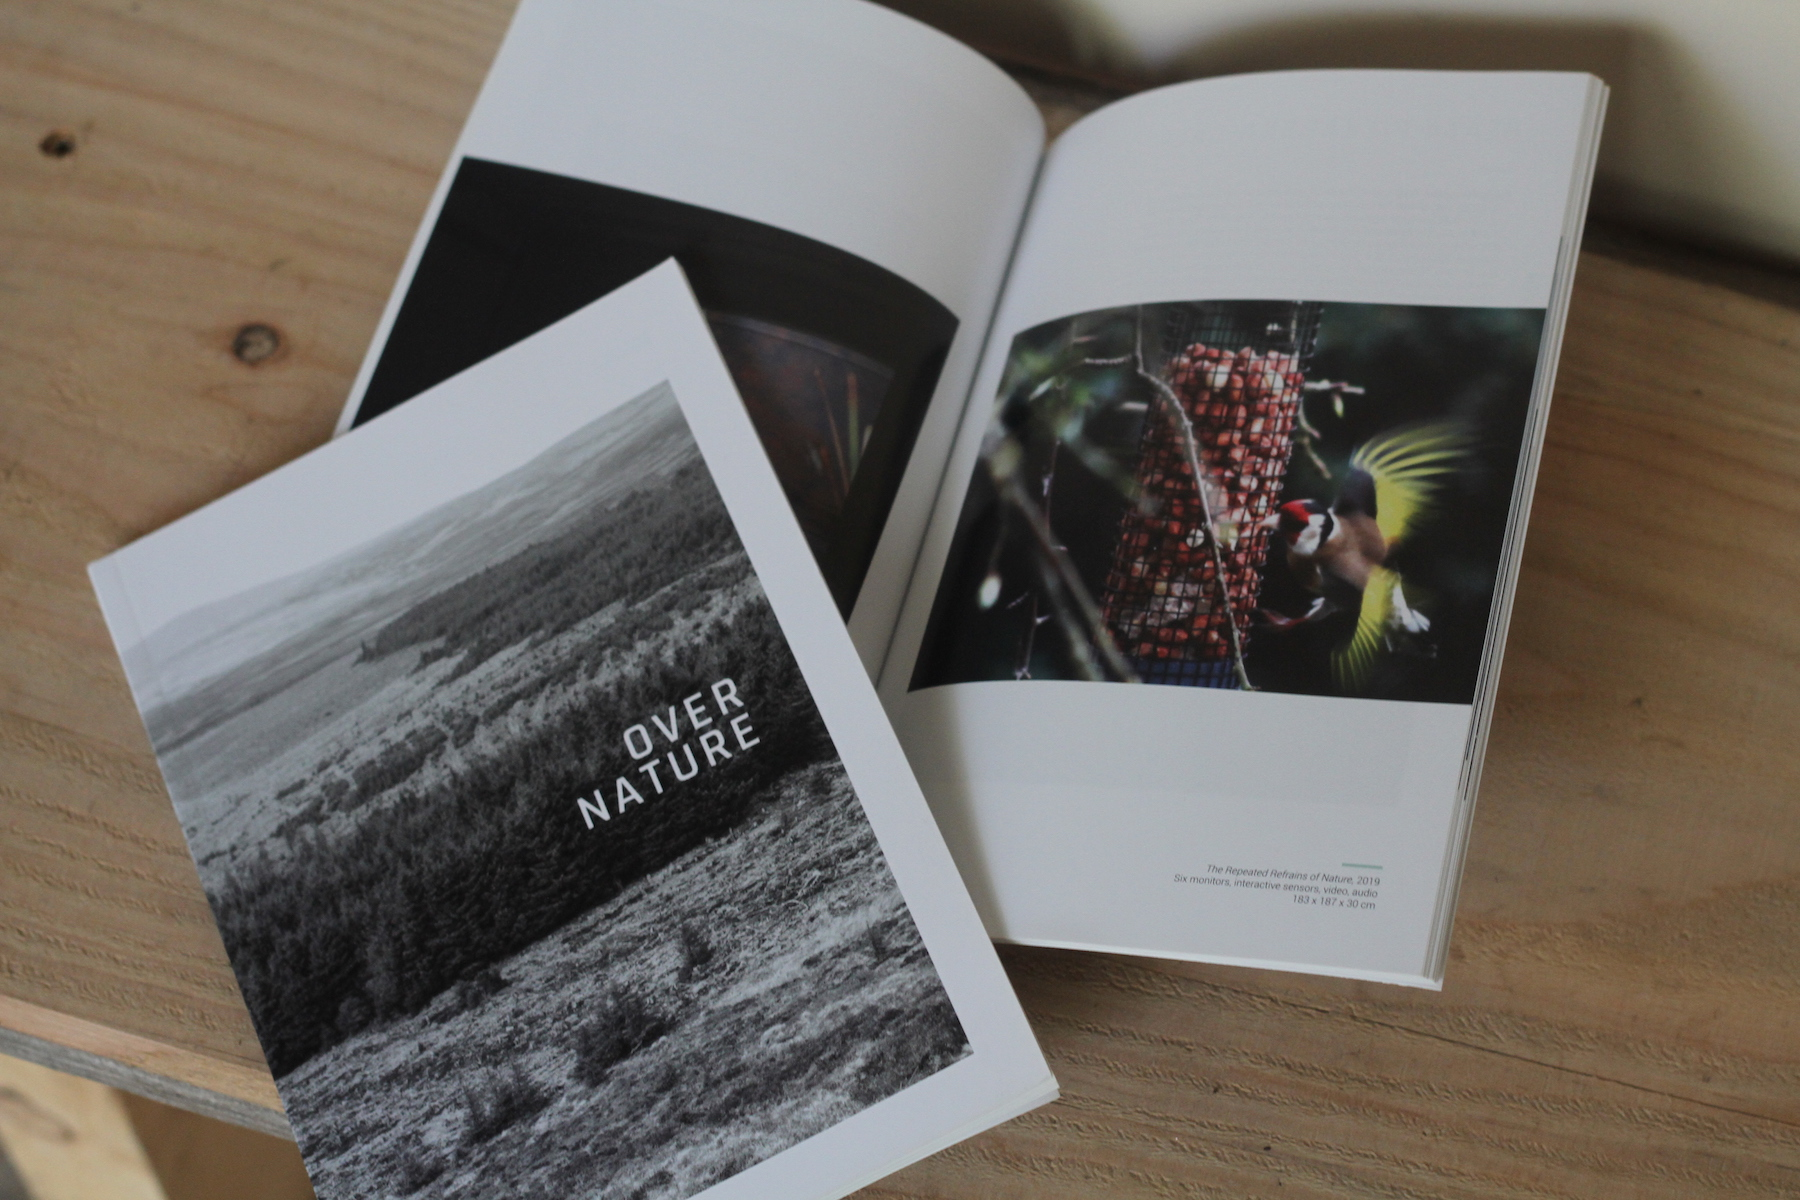 The Over Nature Catalogue